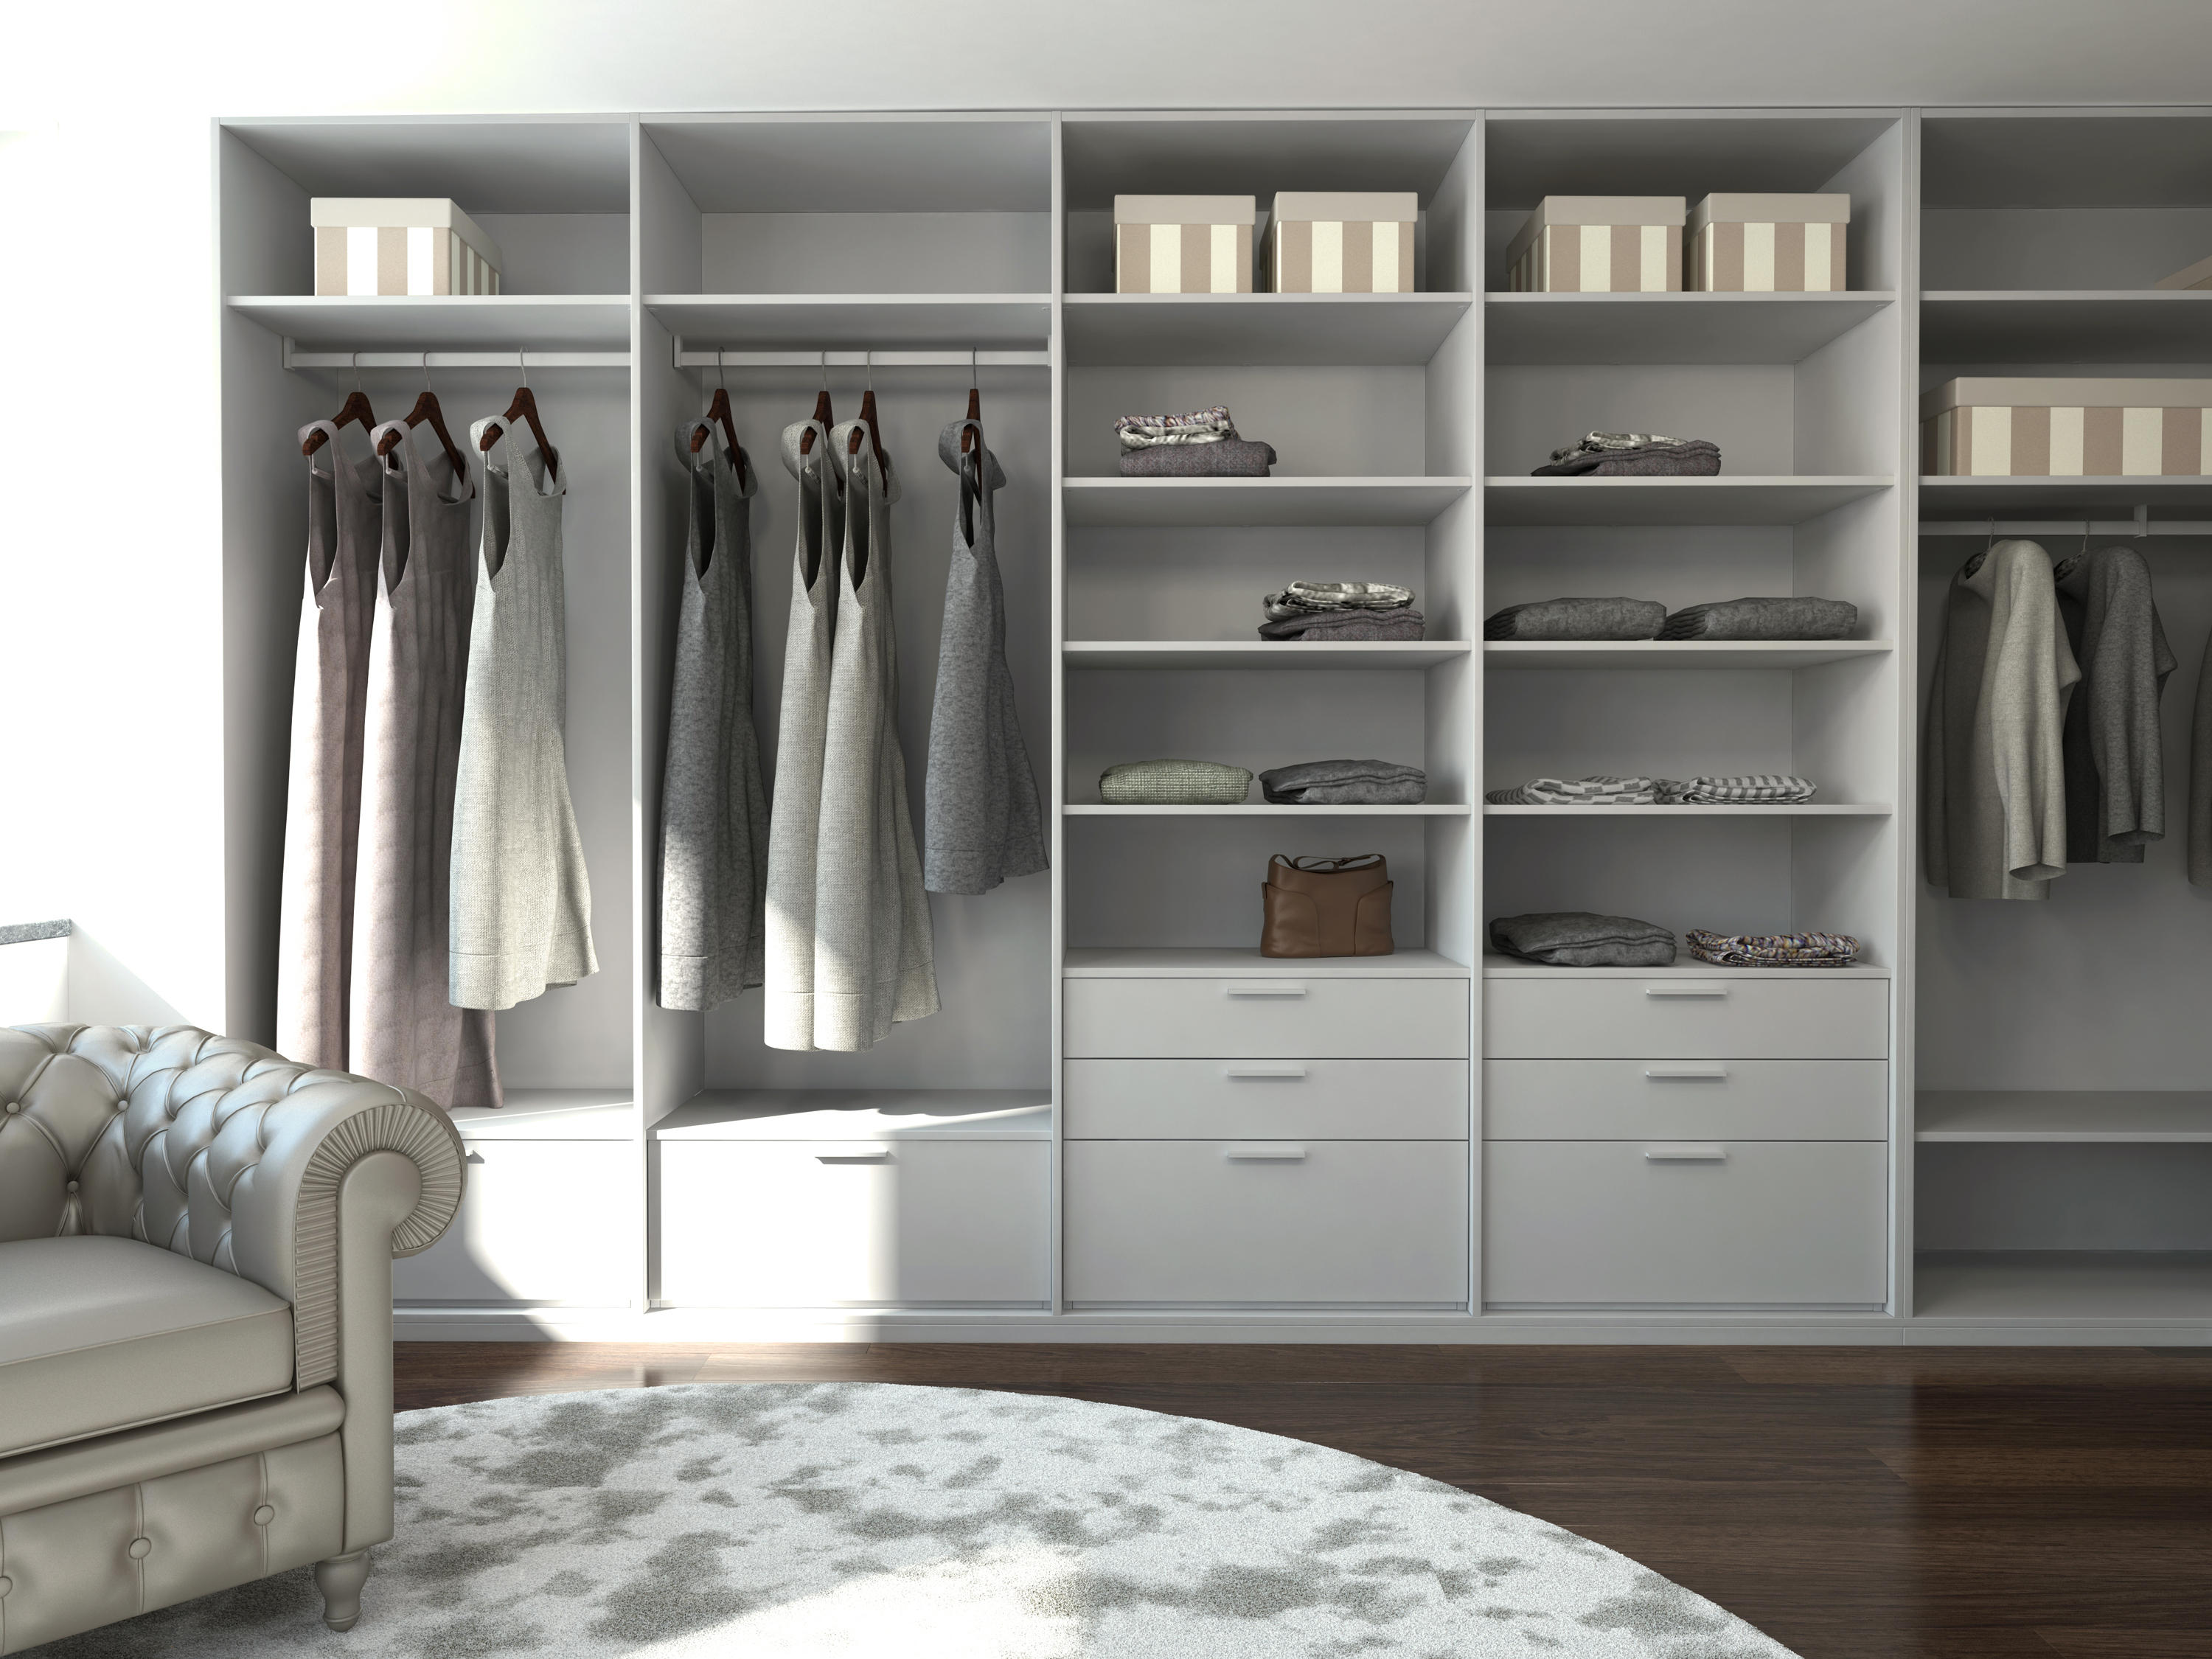 built supawood sonae lunar melawood woodworth on closet ec ash white in duco interior fronts pin closets with